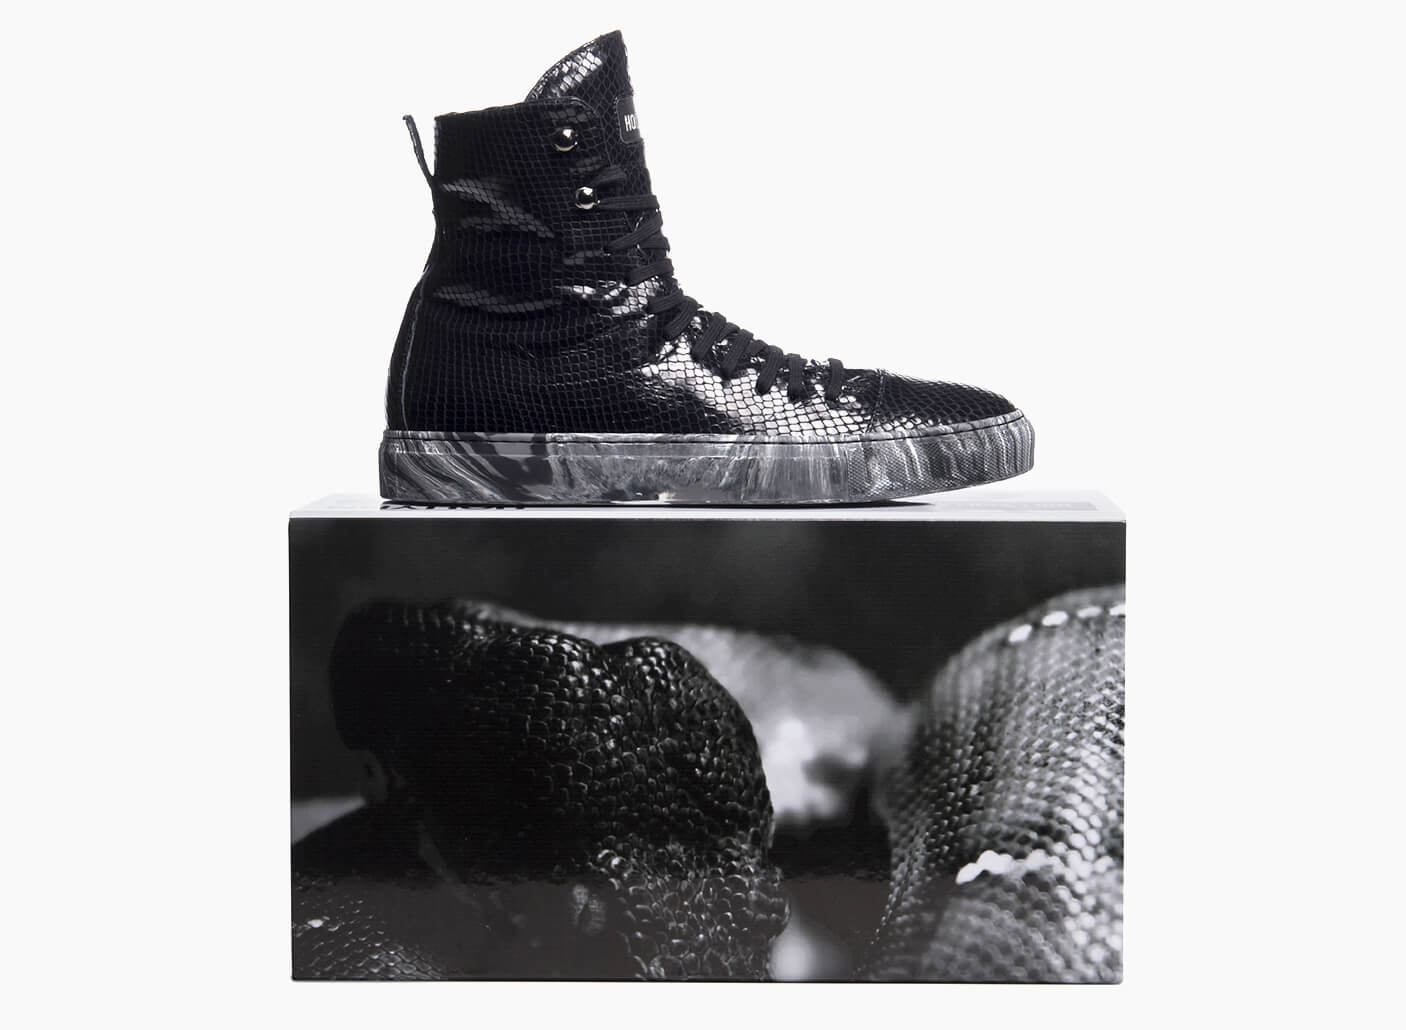 HOLLYNN customized made in Italy sneakers by Denroy Gayle